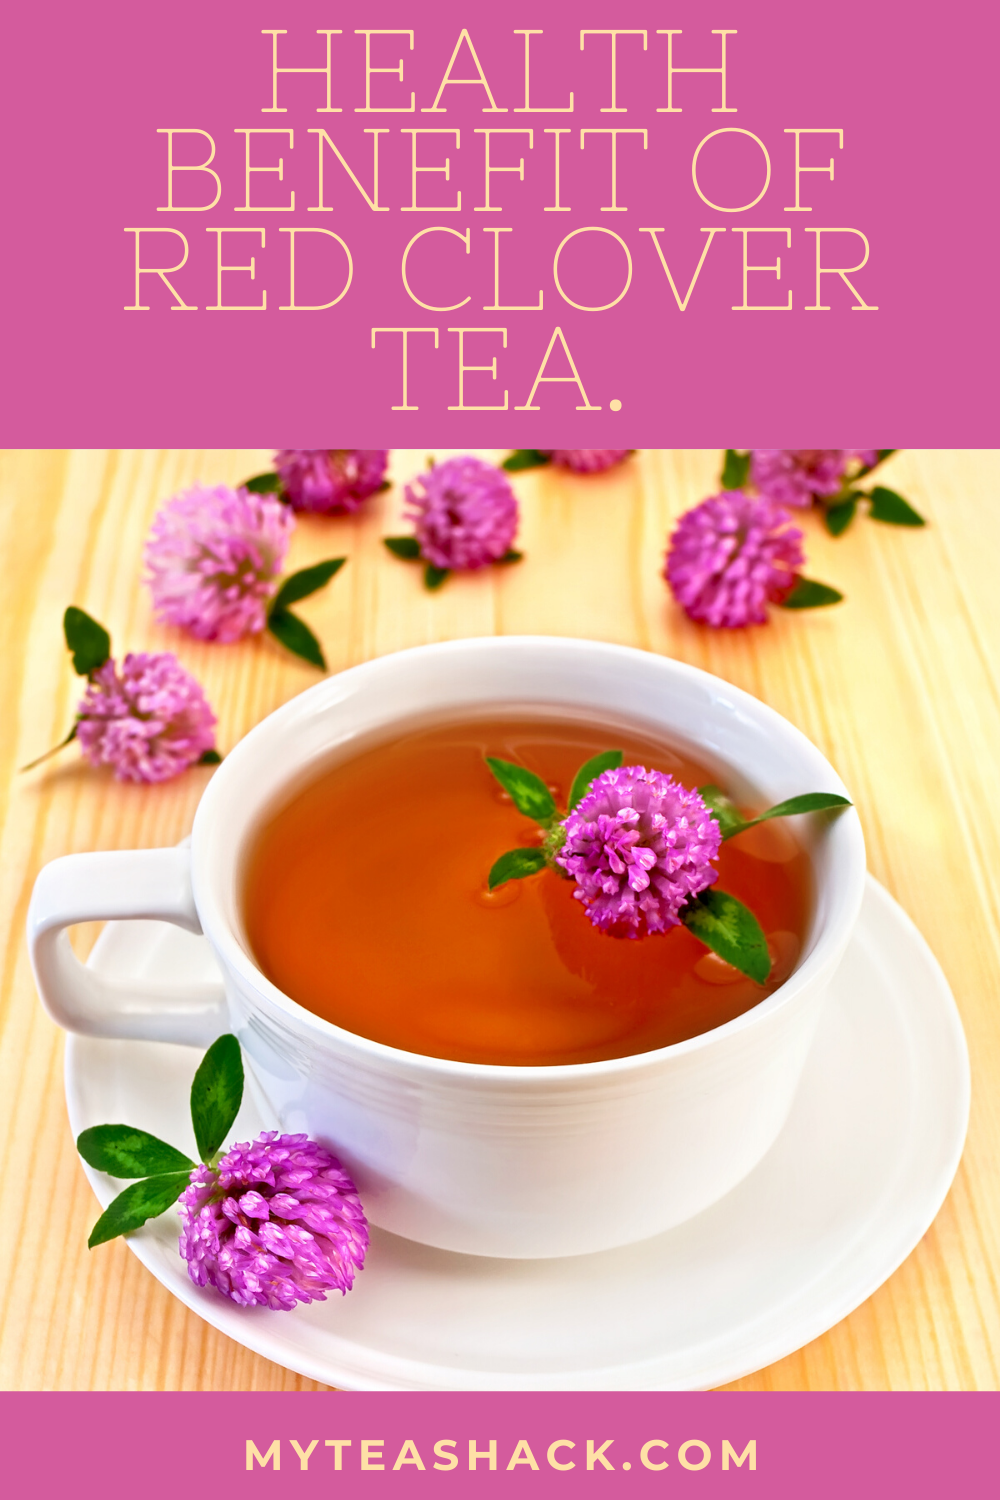 Health Benefits Of Red Clover Tea Updated In 2020 Red